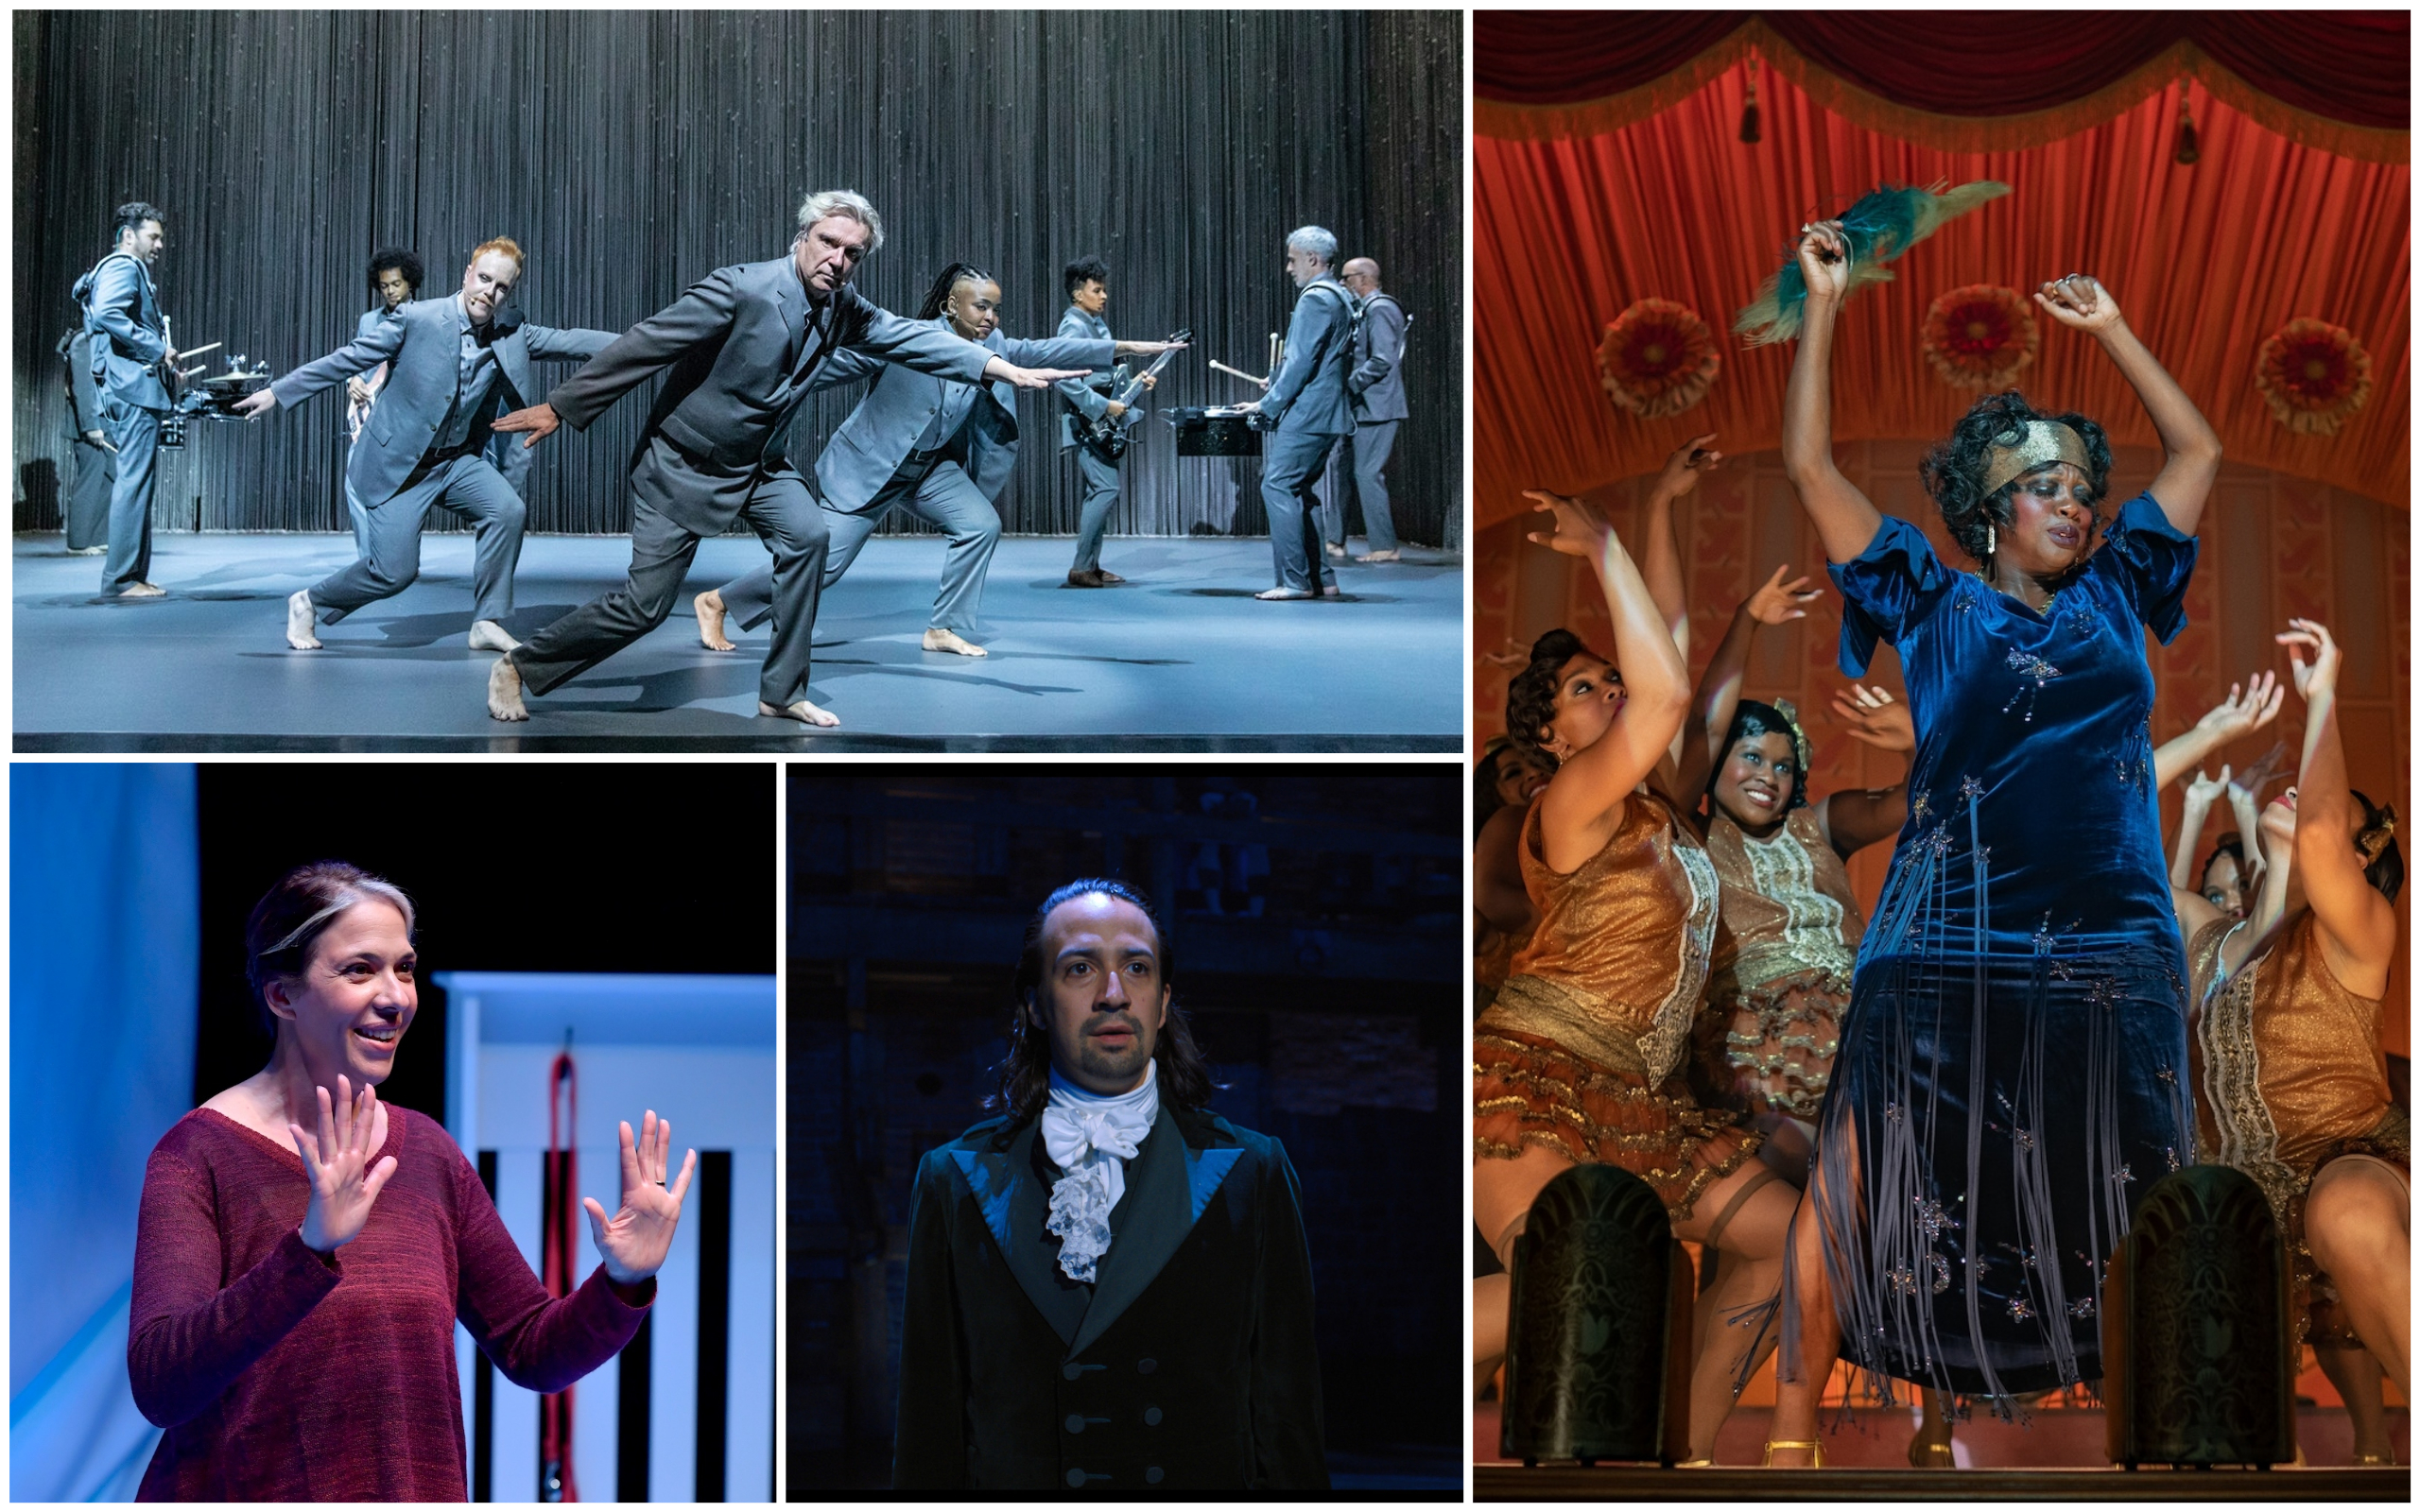 """Theater critics Jacquinn Sinclair and Ed Siegel selected their favorite theater productions from the year, including David Byrne's """"American Utopia,"""" """"Ma Rainey's Black Bottom"""" on Netflix, """"Mala"""" from the Huntington Theatre Company and """"Hamilton,"""" which is available to stream on Disney+. (Courtesy)"""